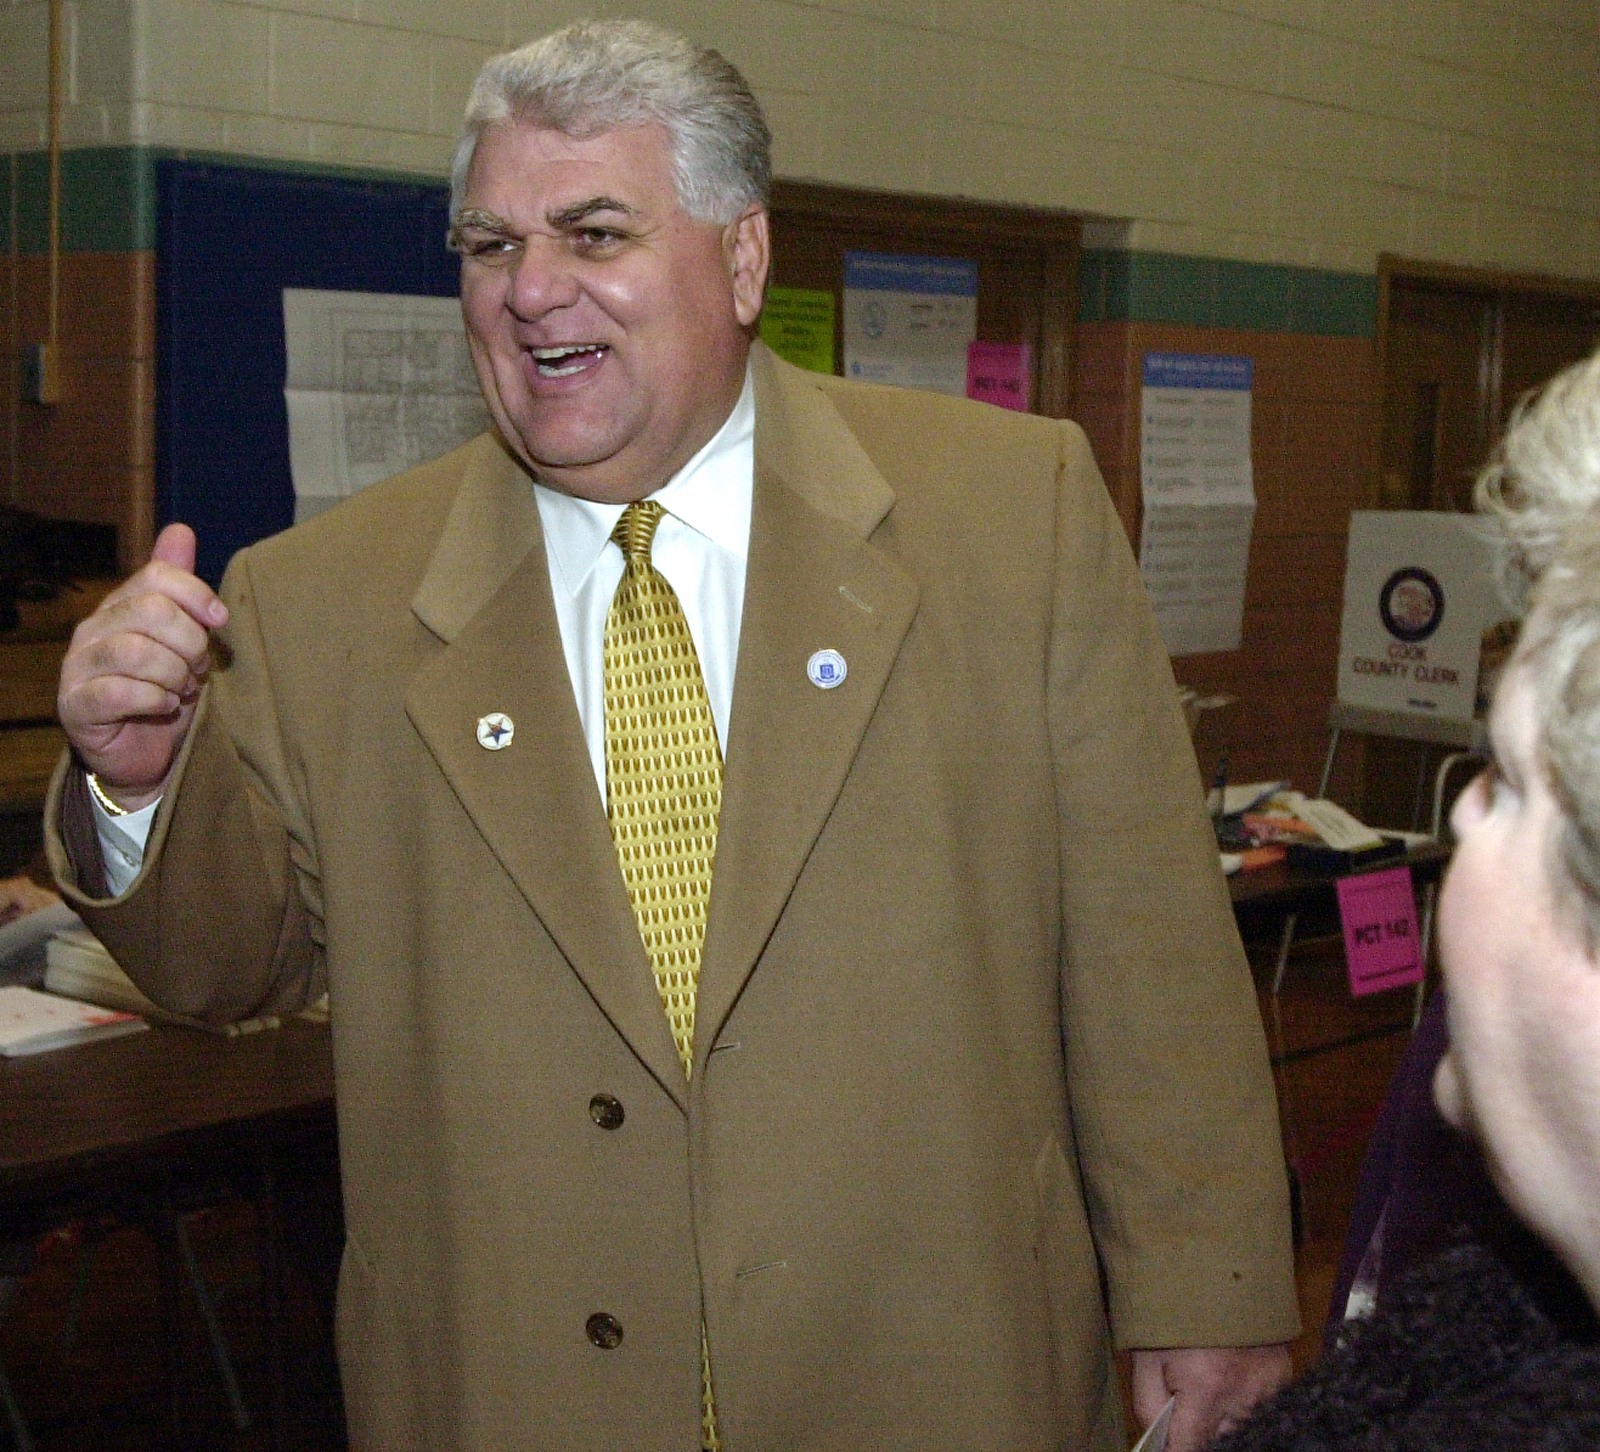 A spokesman for Melrose Park Mayor Ron Serpico says there was no quid pro quo.